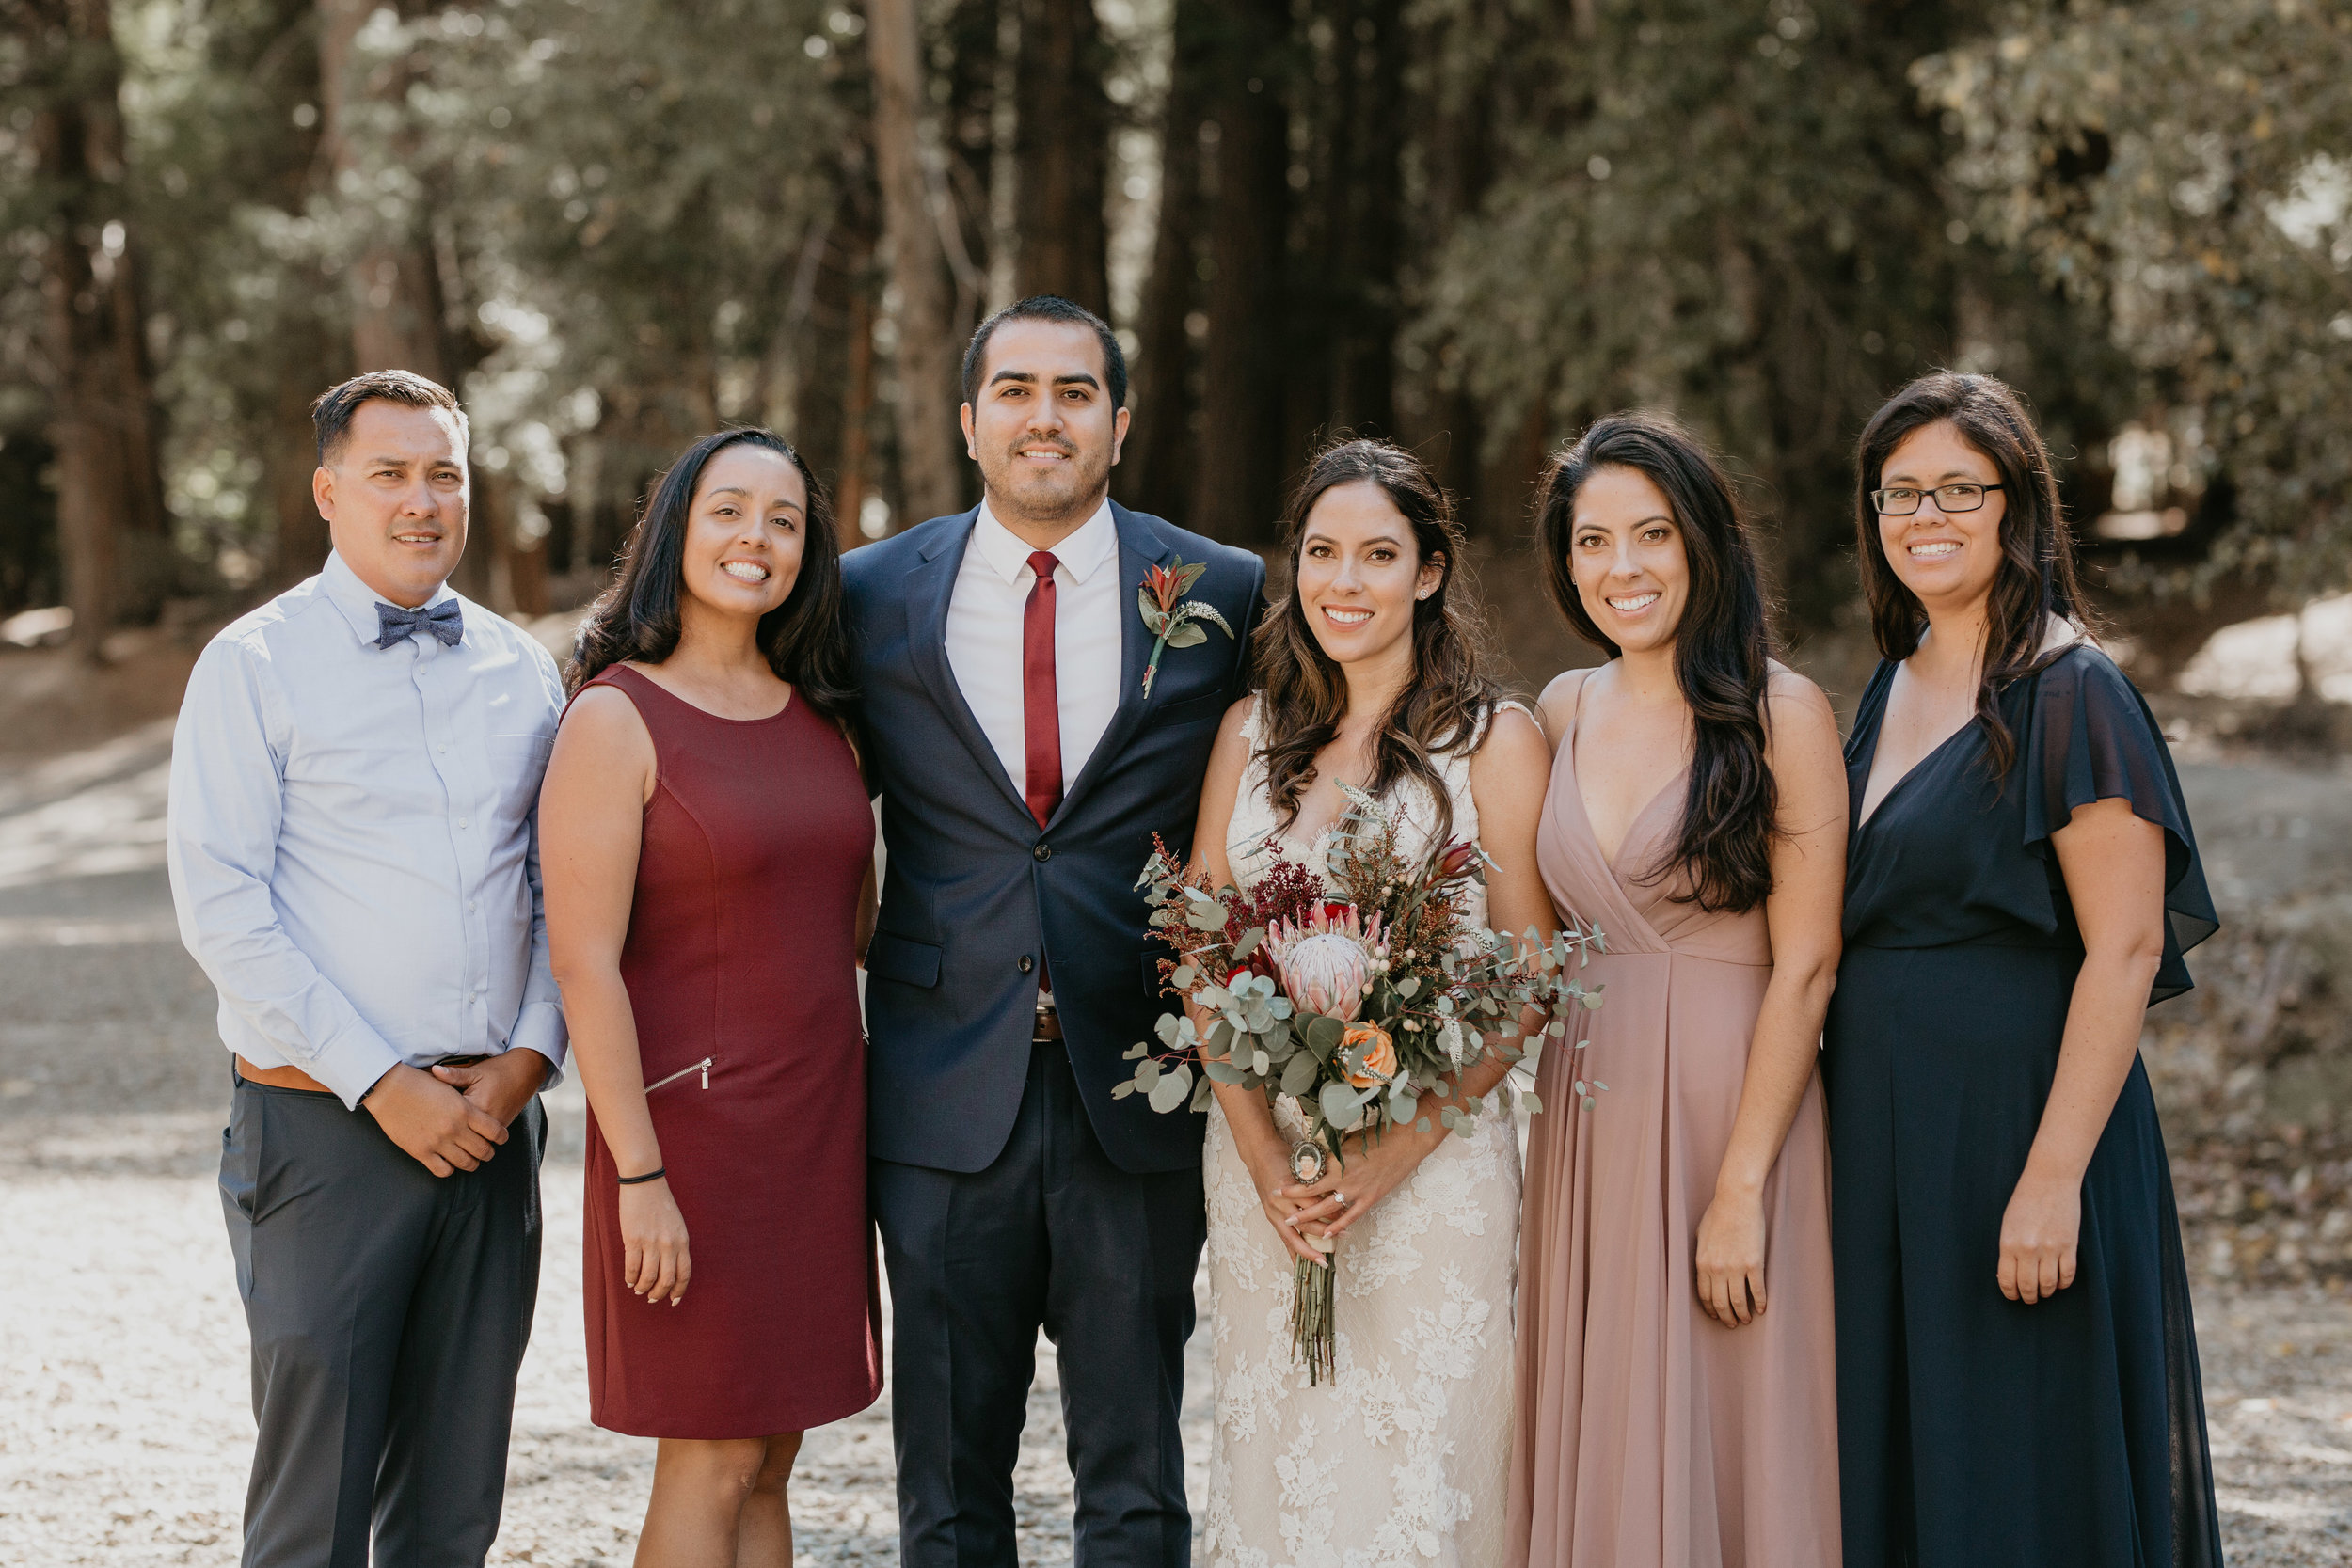 nicole-daacke-photography-intimate-elopement-wedding-yosemite-national-park-california-taft-point-sunset-photos-yosemite-valley-tunnel-view-first-look-sunrise-golden-granite-hiking-adventure-wedding-adventurous-elopement-photographer-59.jpg